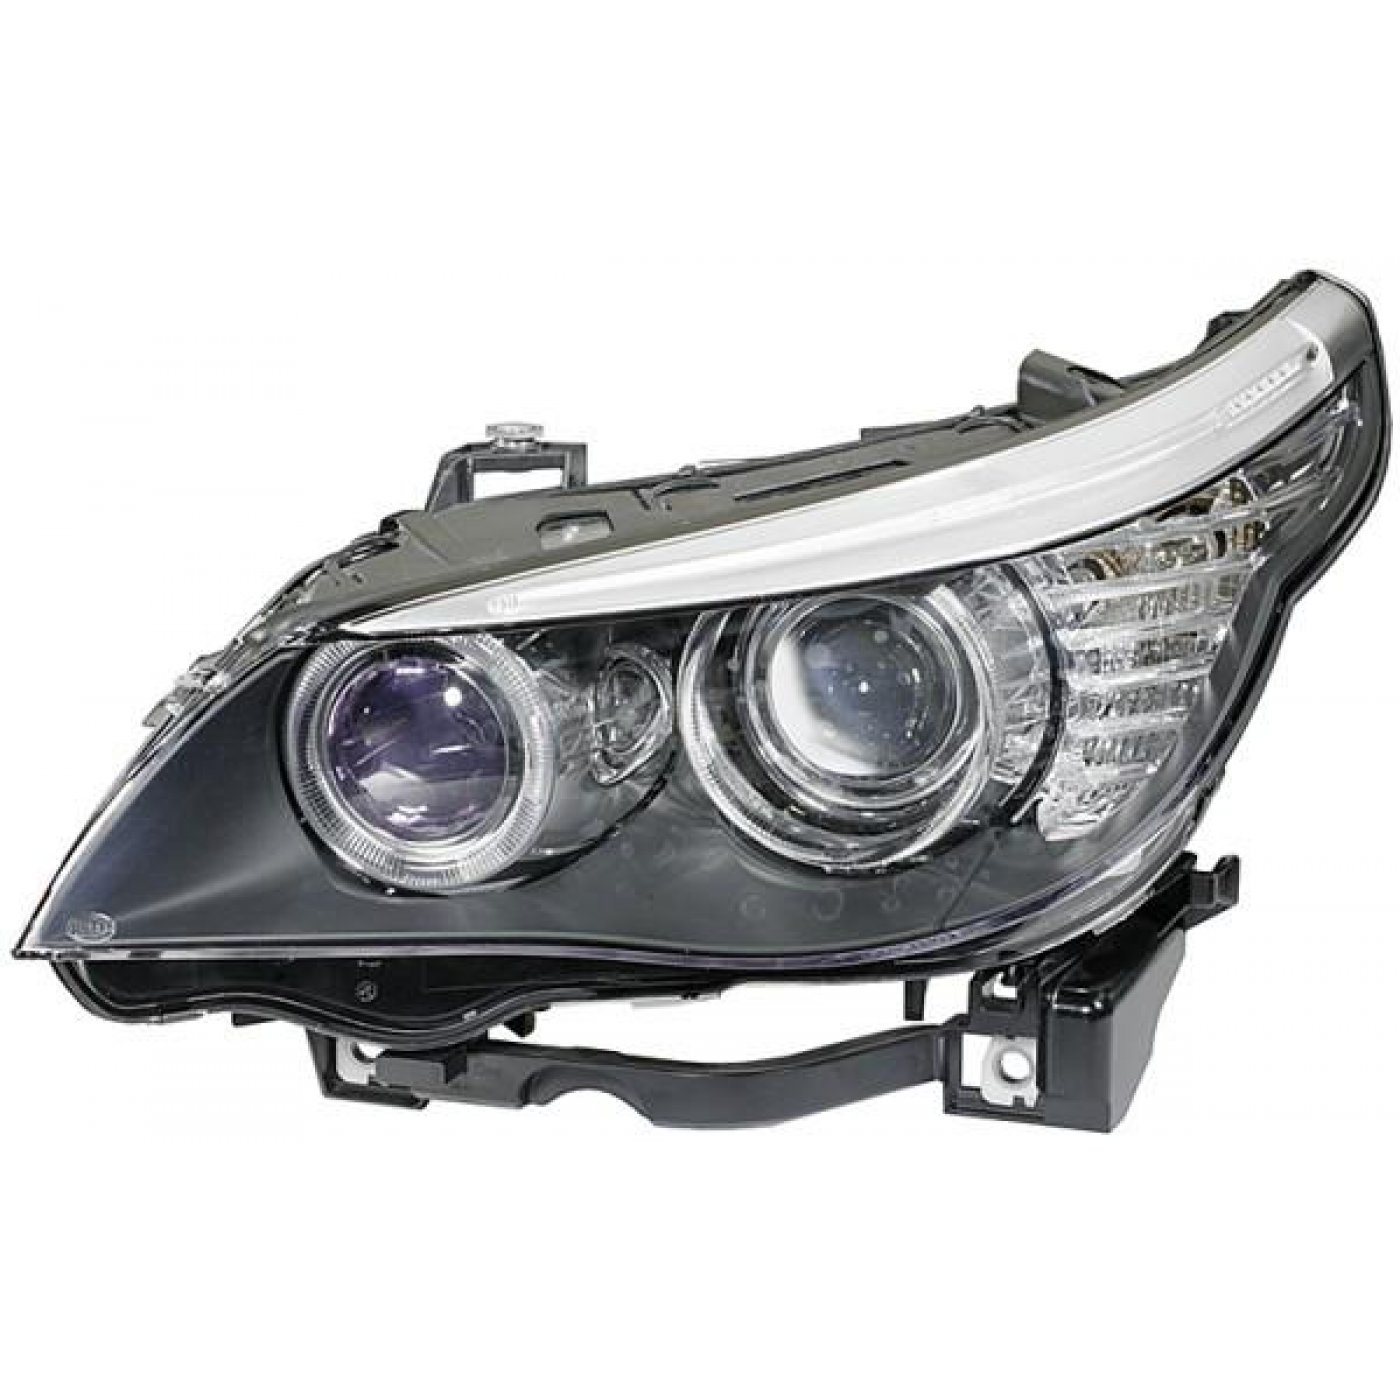 Hella Bi Xenon Right Headlight Bmw E60 E61 From 04 2007